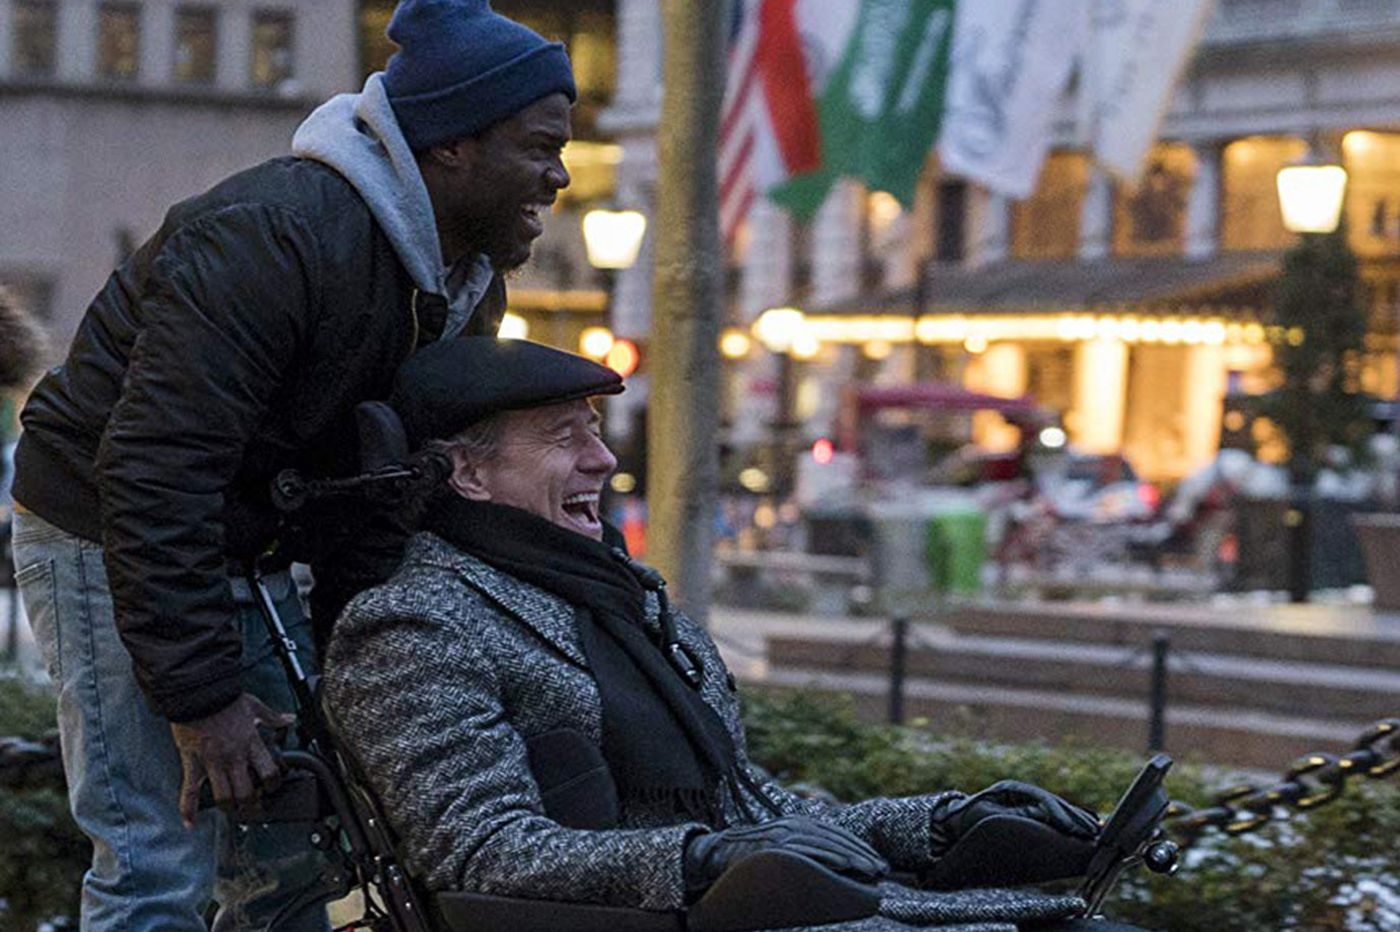 How Kevin Hart's 'The Upside' doubled box office projections